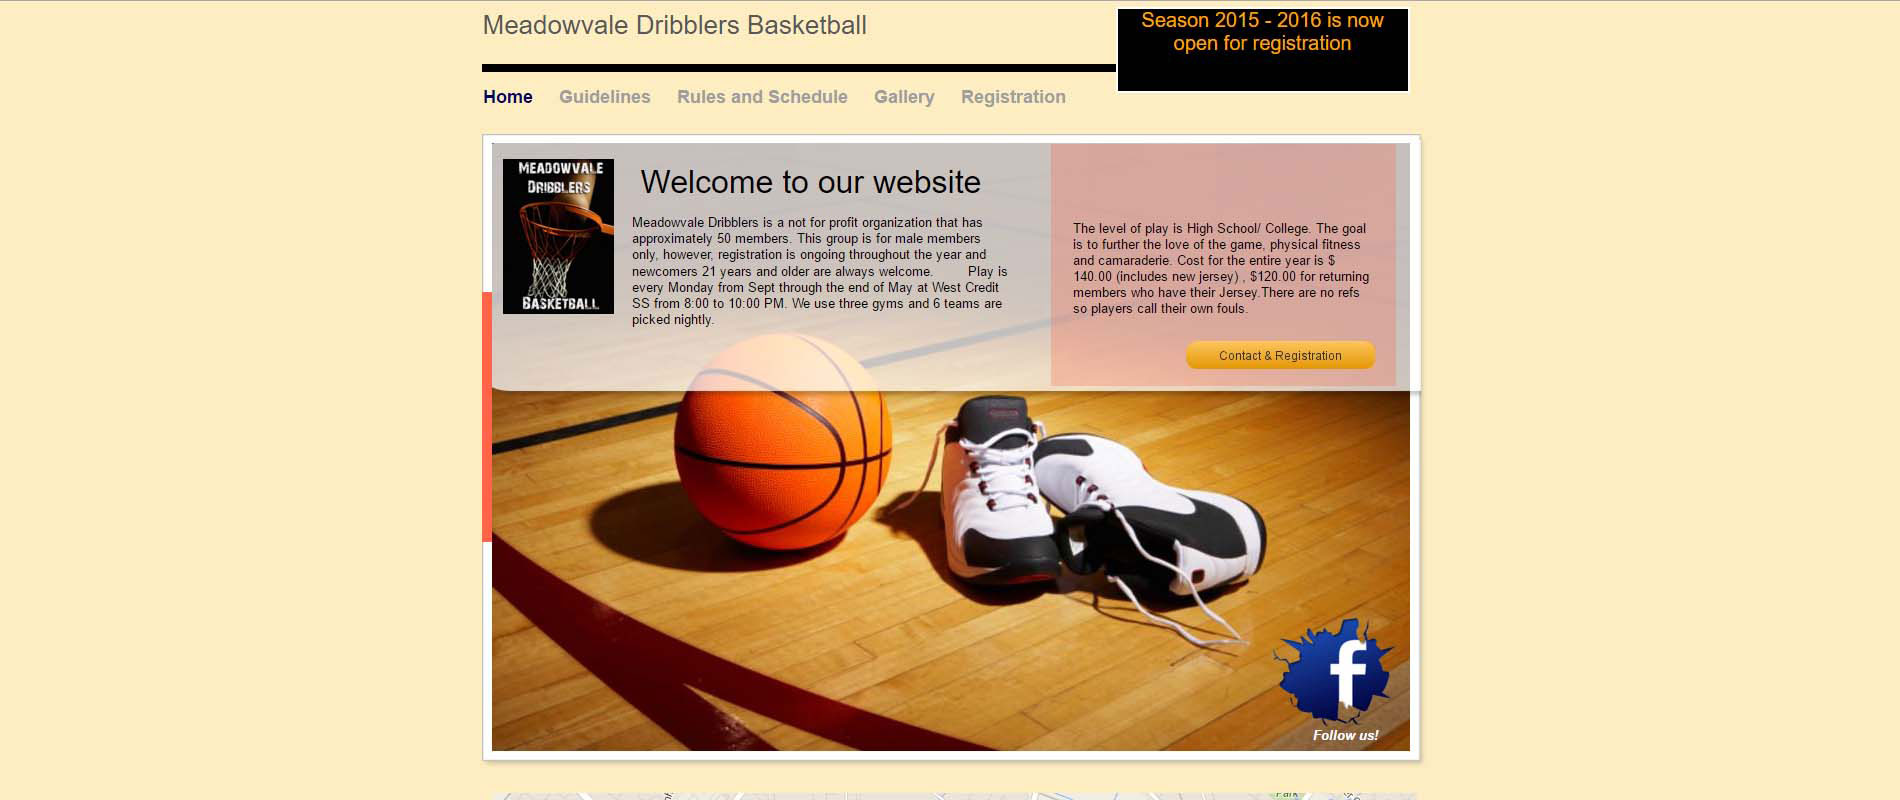 Meadowvale Dribblers Basketball